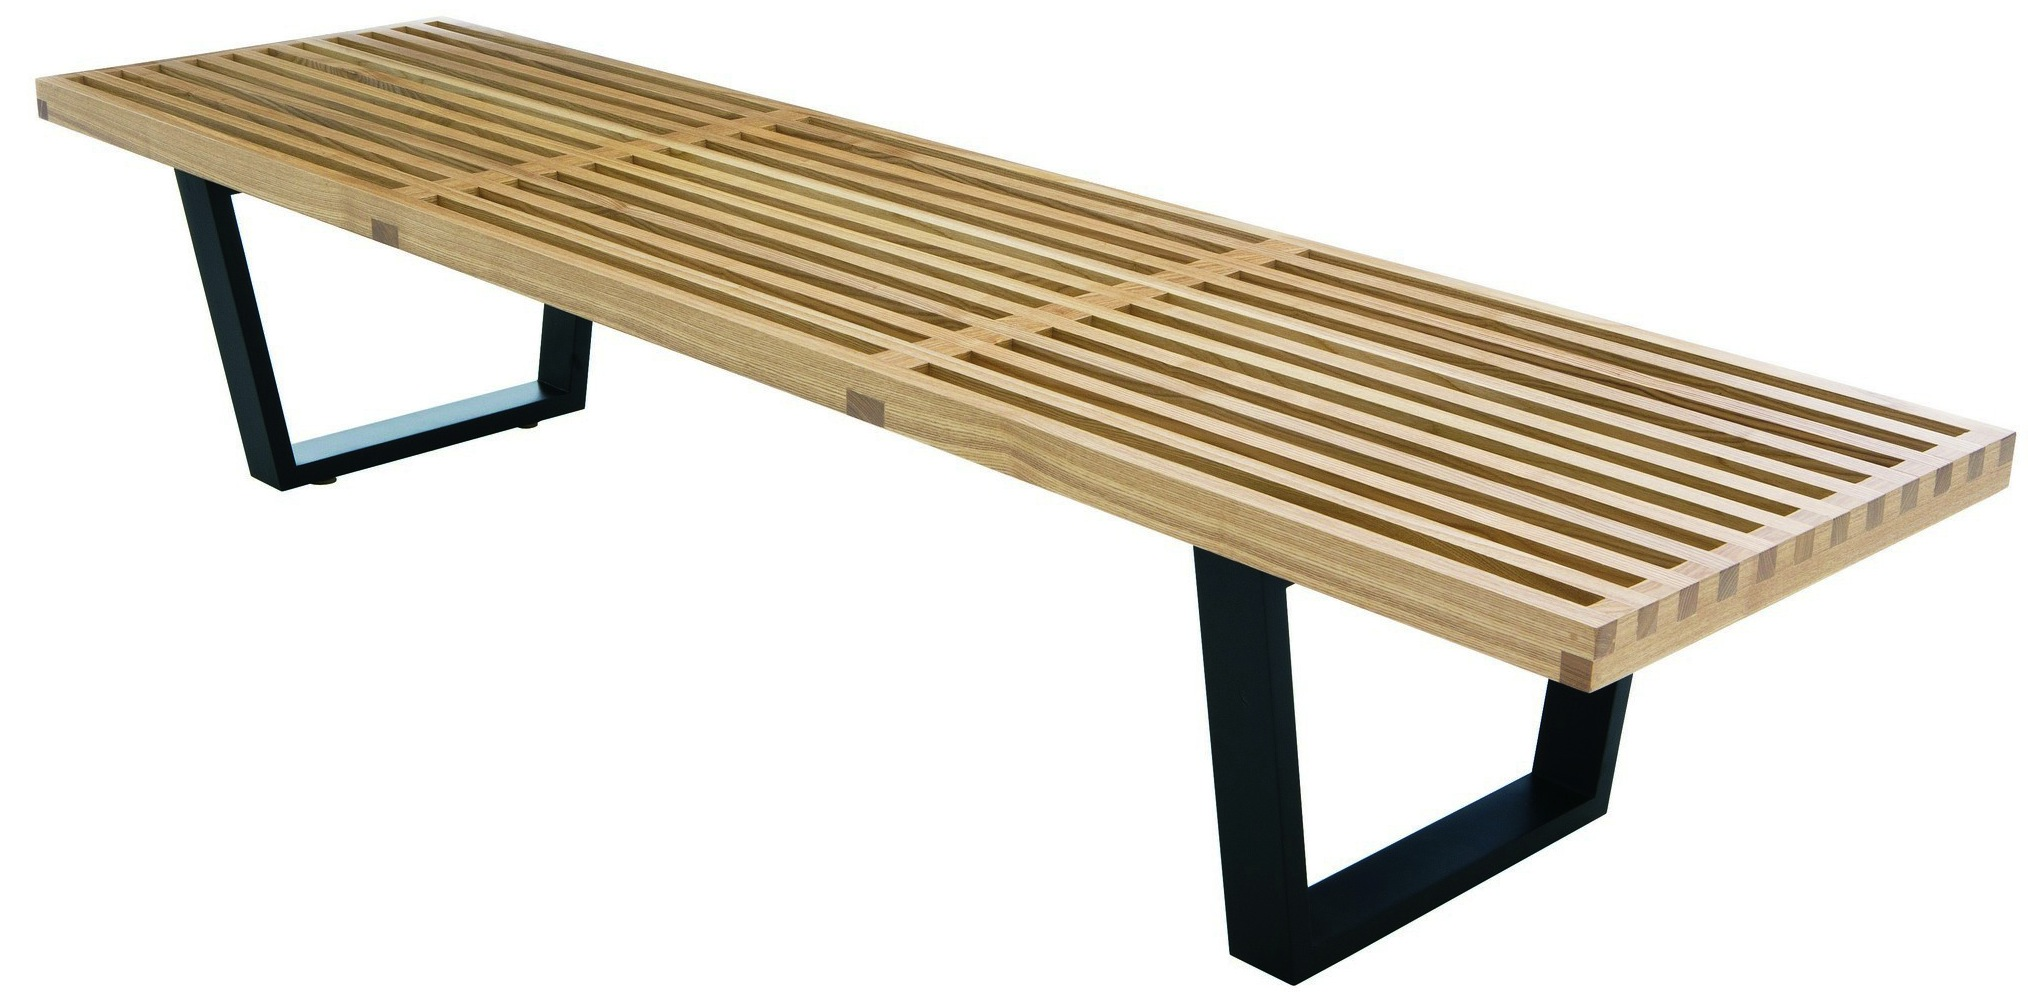 natural-ash-6ft-hardwood-bench.jpg